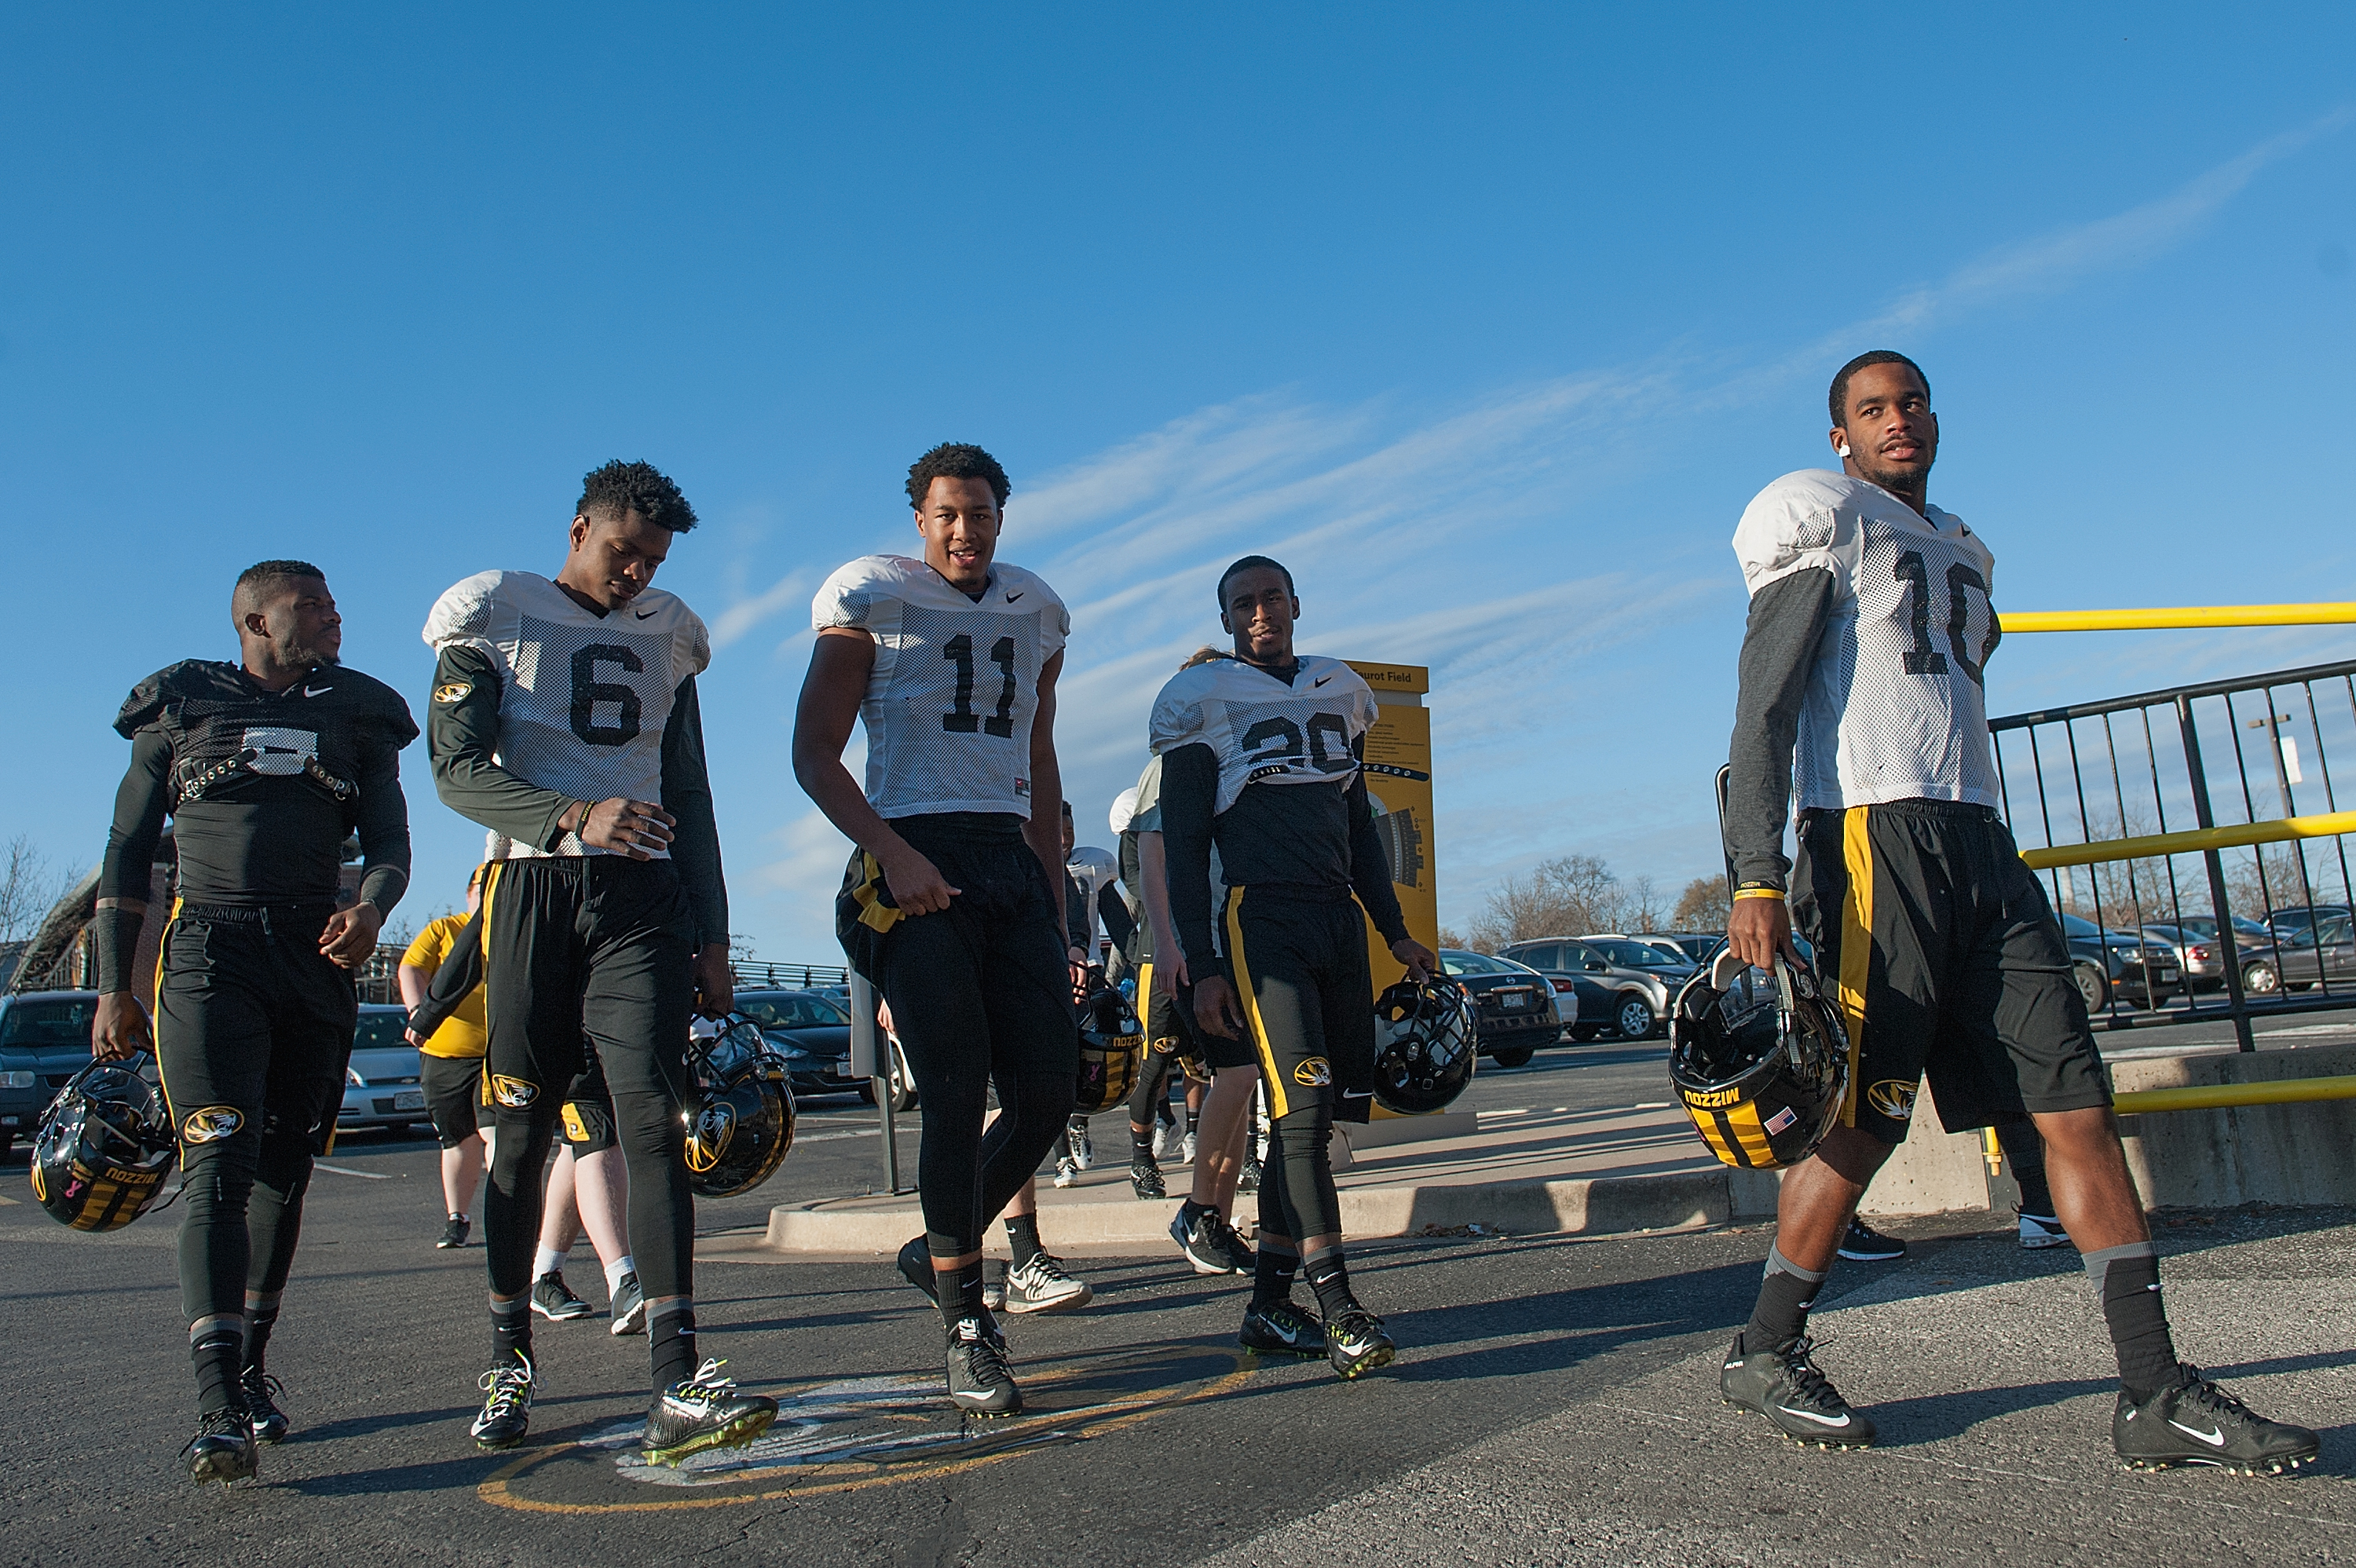 Members of the University of Missouri Tigers Football Team return to practice at Memorial Stadium at Faurot Field in Columbia, Mo. on Nov. 10, 2015.